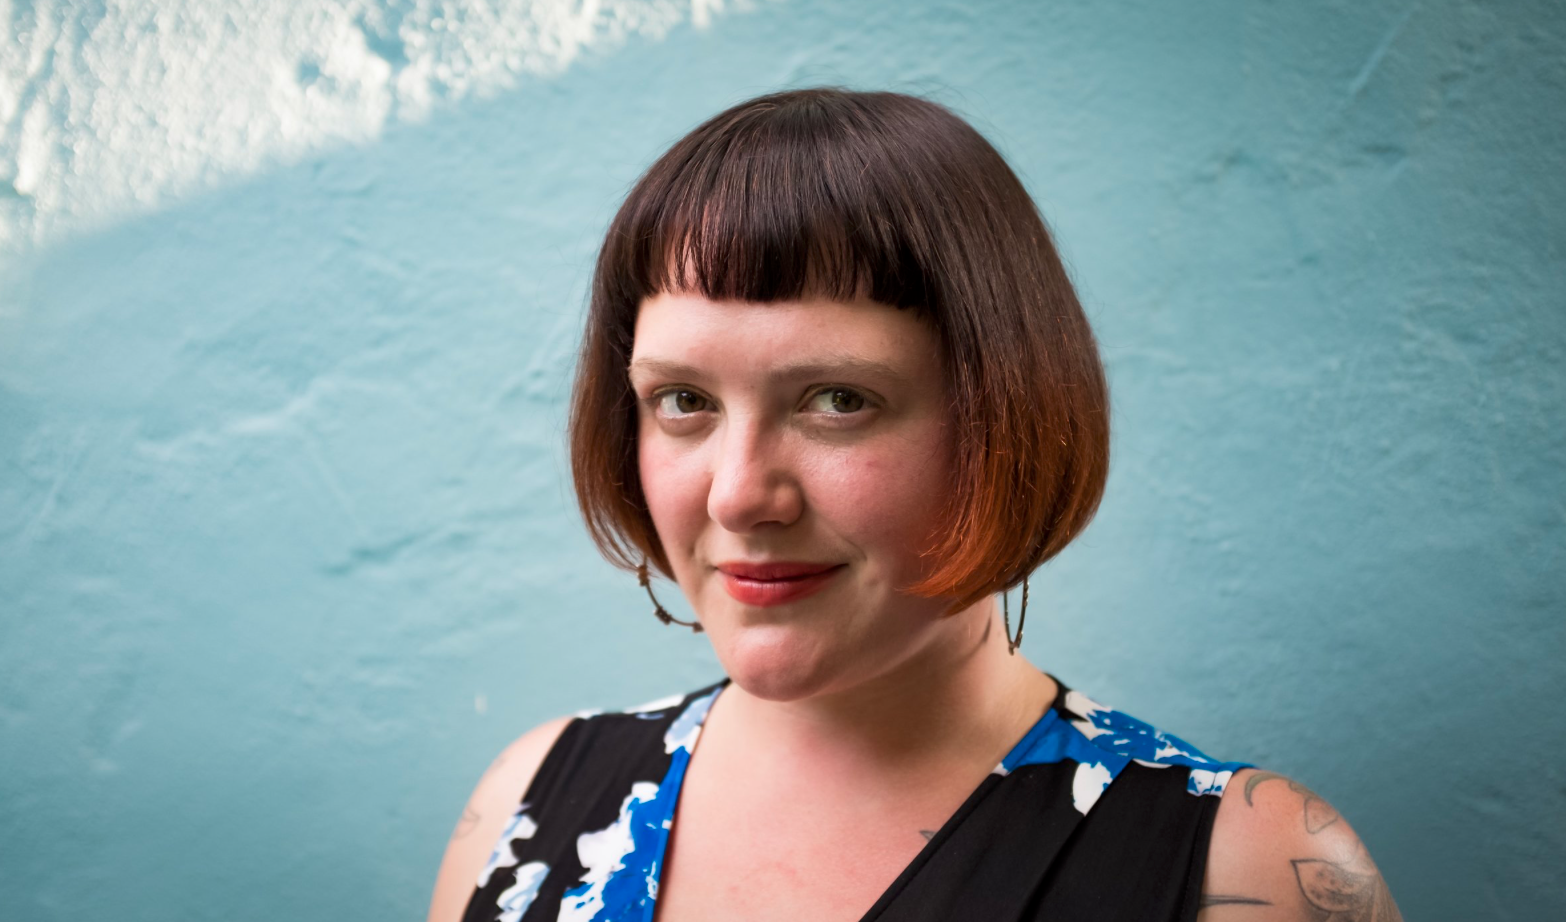 Luiza Flynn-Goodlett - Author of the chapbooks Unseasonable Weather  and Congress of Mud.  She serves as editor-in-chief of Foglifter Journal and lives in Oakland, California.